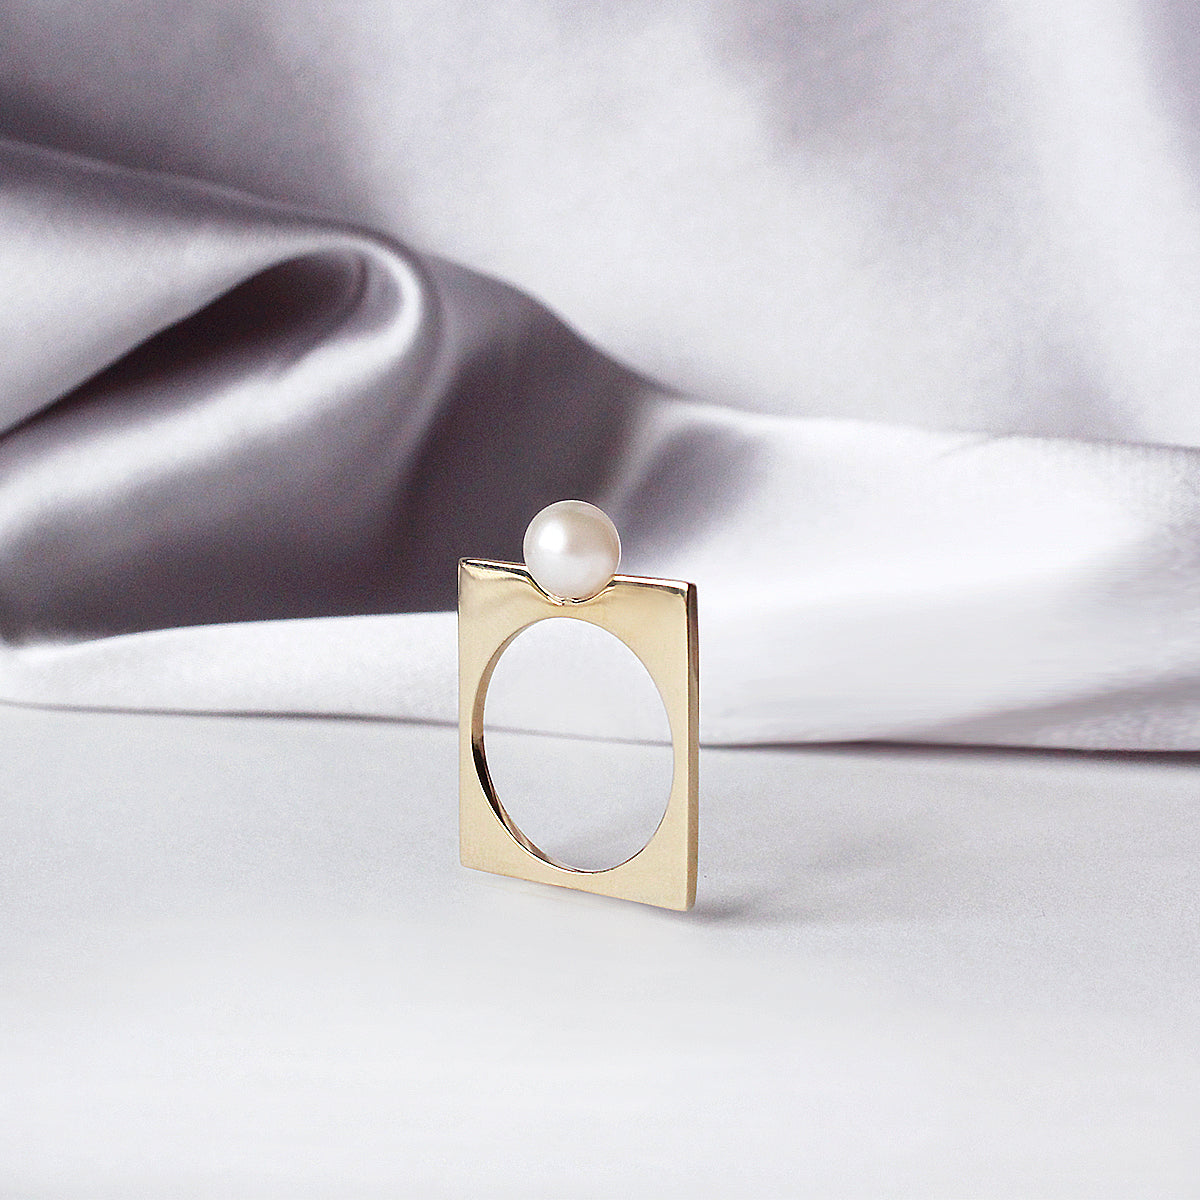 Renata Ring- 14k yellow gold-plated